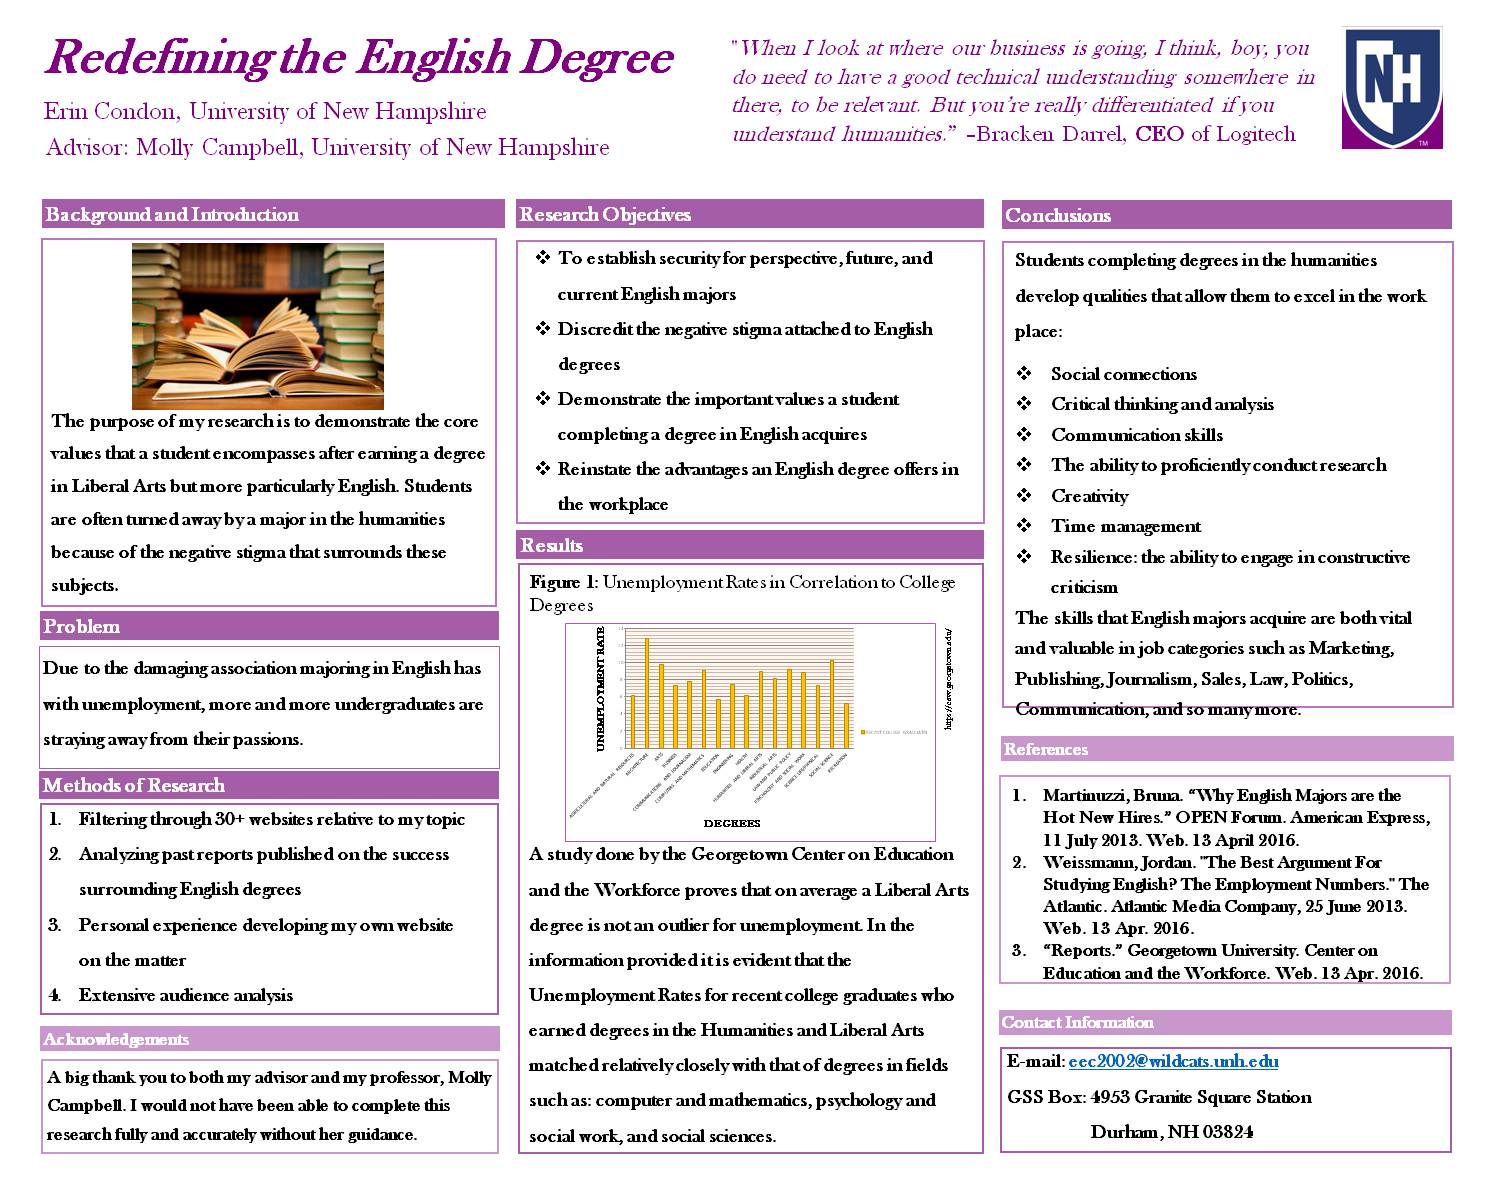 Redefining The English Degree by eec2002